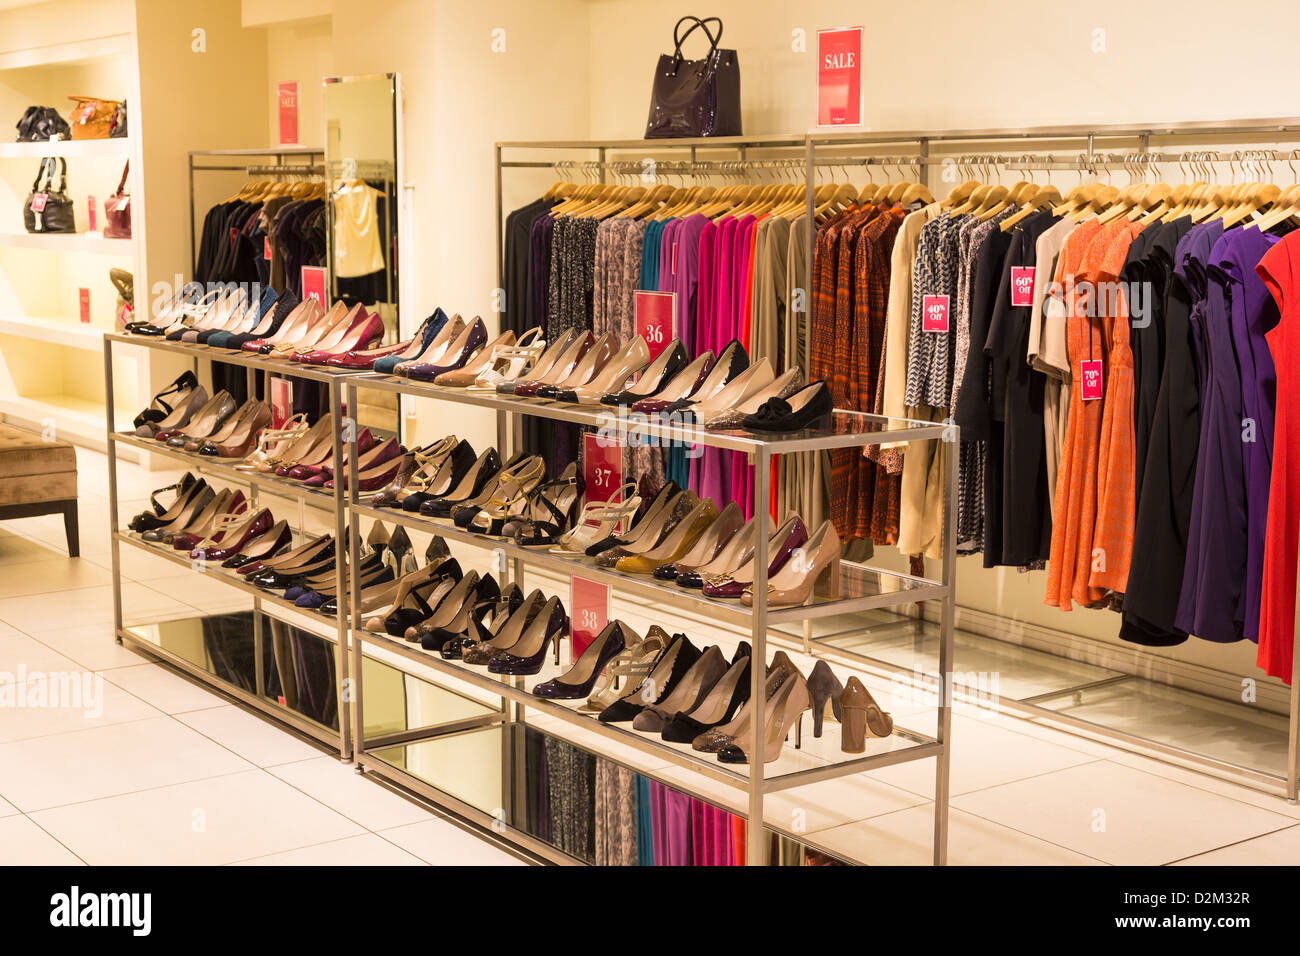 26742bb2903 Womens clothing shop with shoes and dresses Stock Photo: 53301887 ...